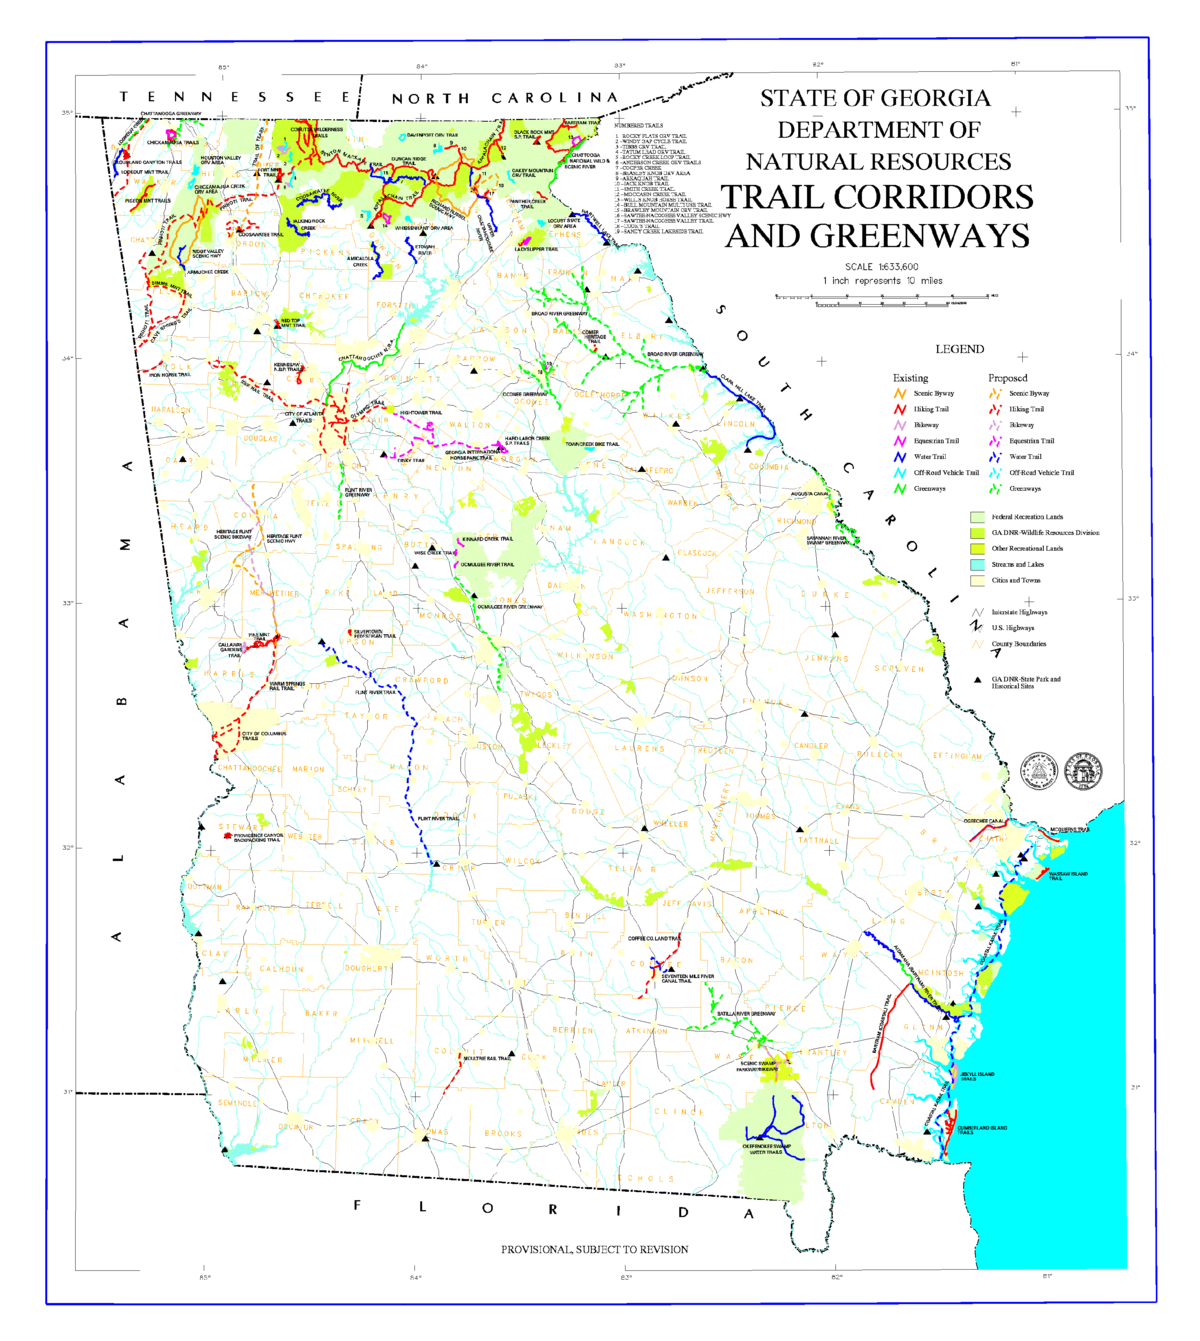 continental united states map with Trails Of The Oconee National Forest on Andaz Fifth Avenue further Chatham Bars Inn likewise Point Roberts Washington Its Harder To Get To Than You Think as well Trails of the Oconee National Forest as well Ladera Resort St Lucia.